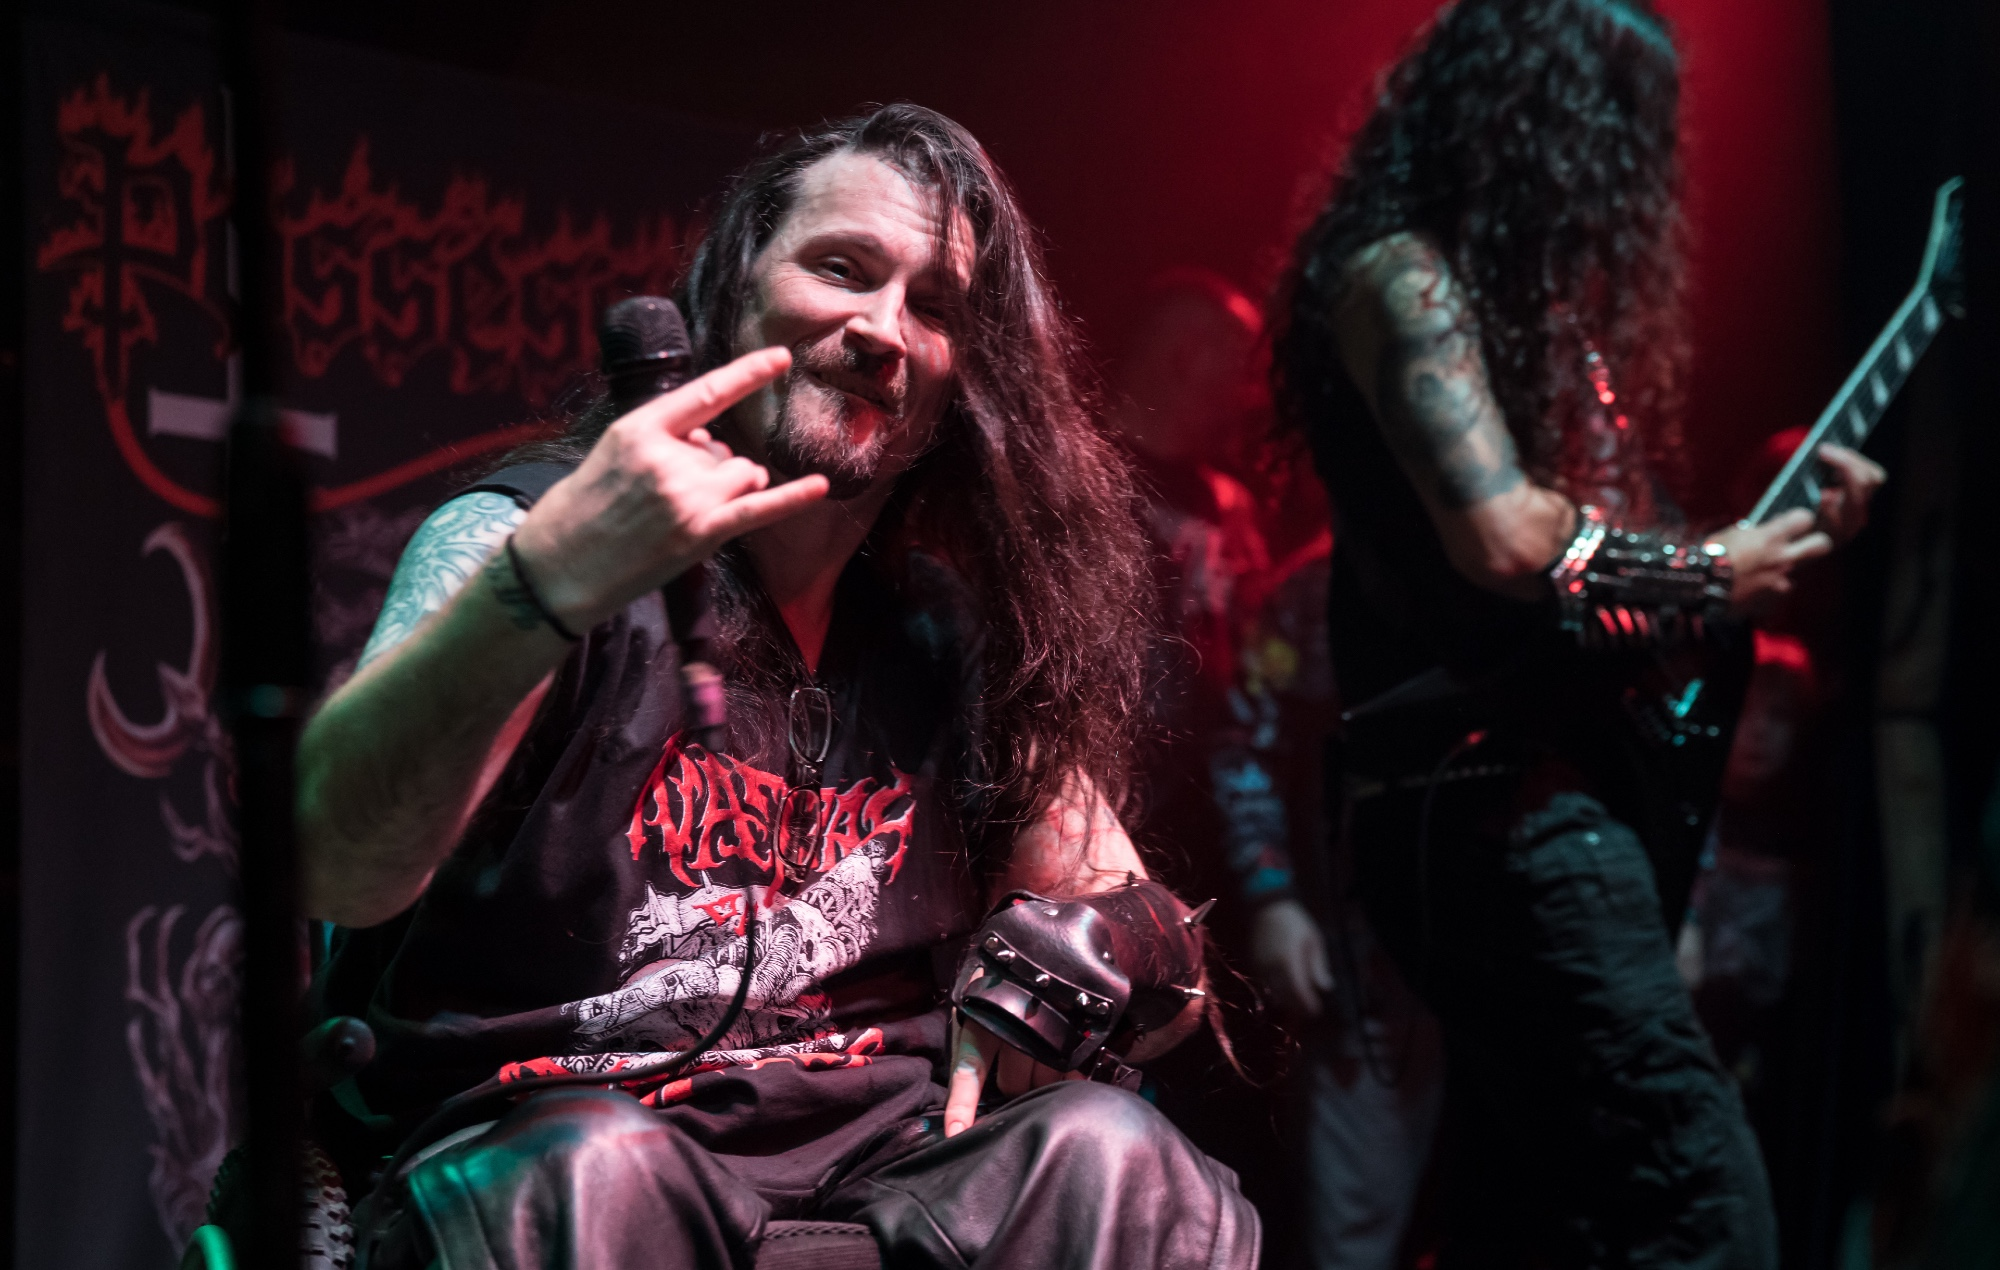 Possessed vocalist Jeff Becerra has walked for the first time in over 30 years